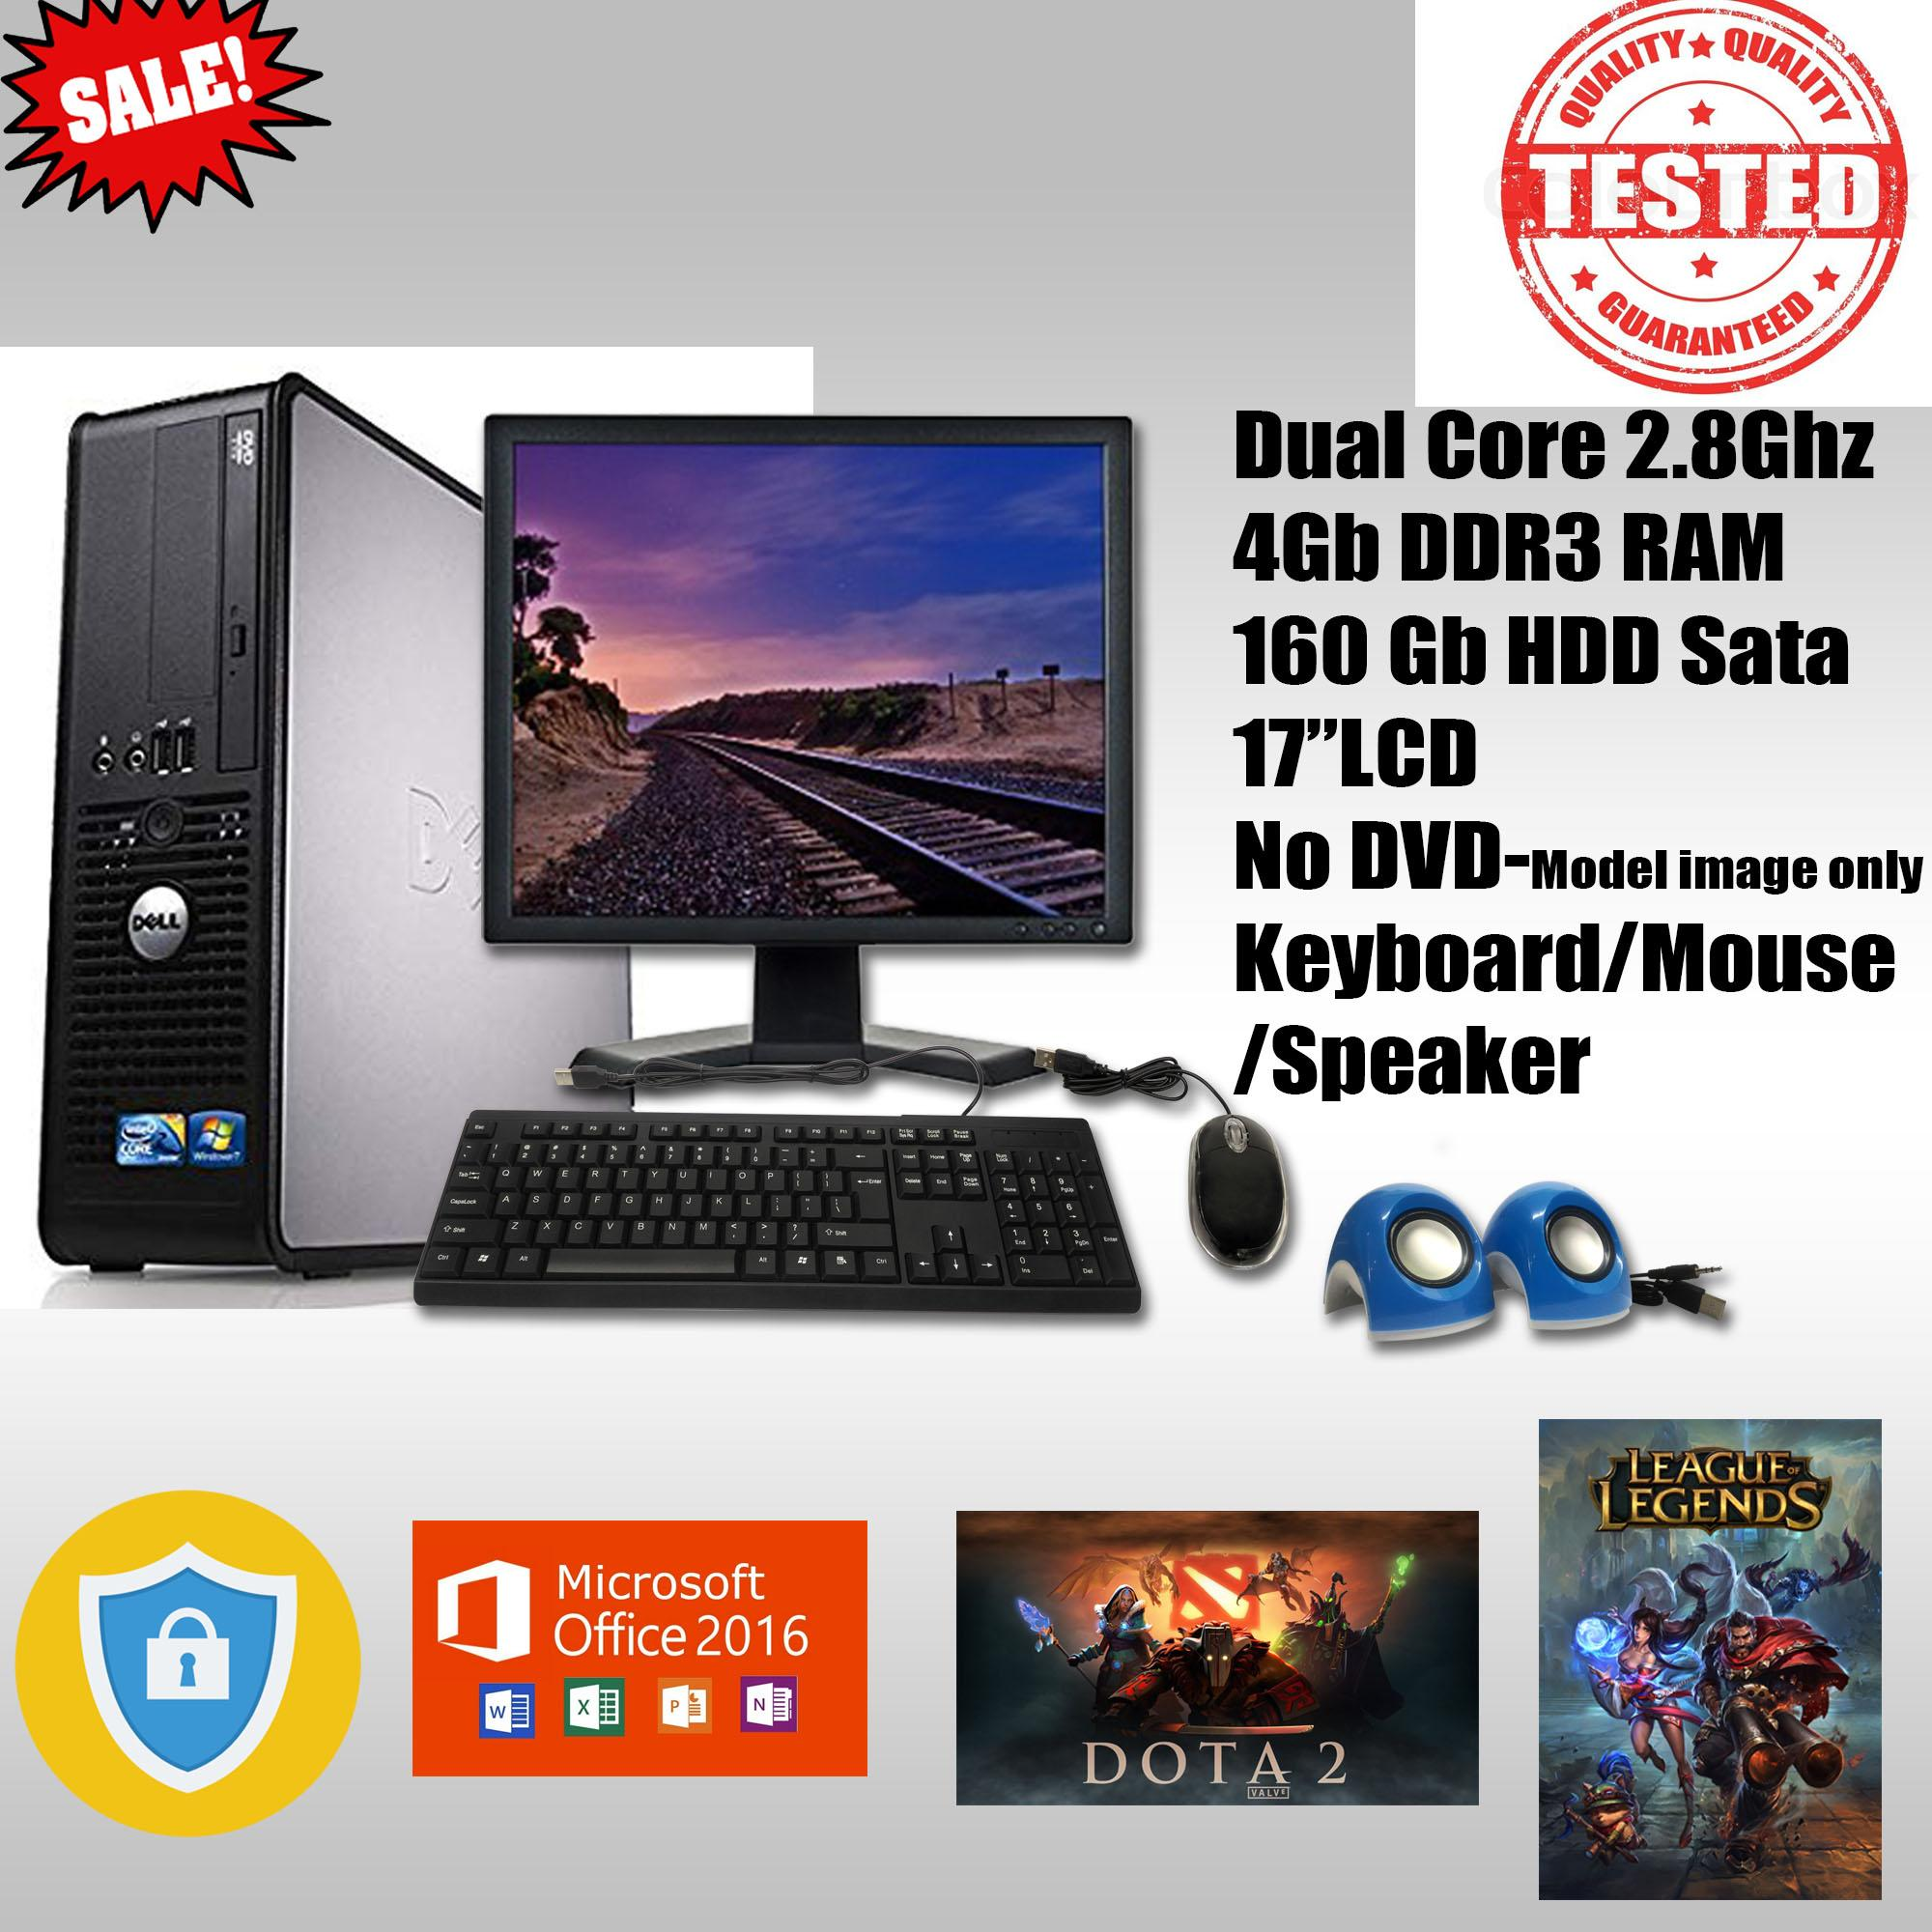 Dell 780 Dual Core 2 8Ghz Computer Set (Seller Refurbished)